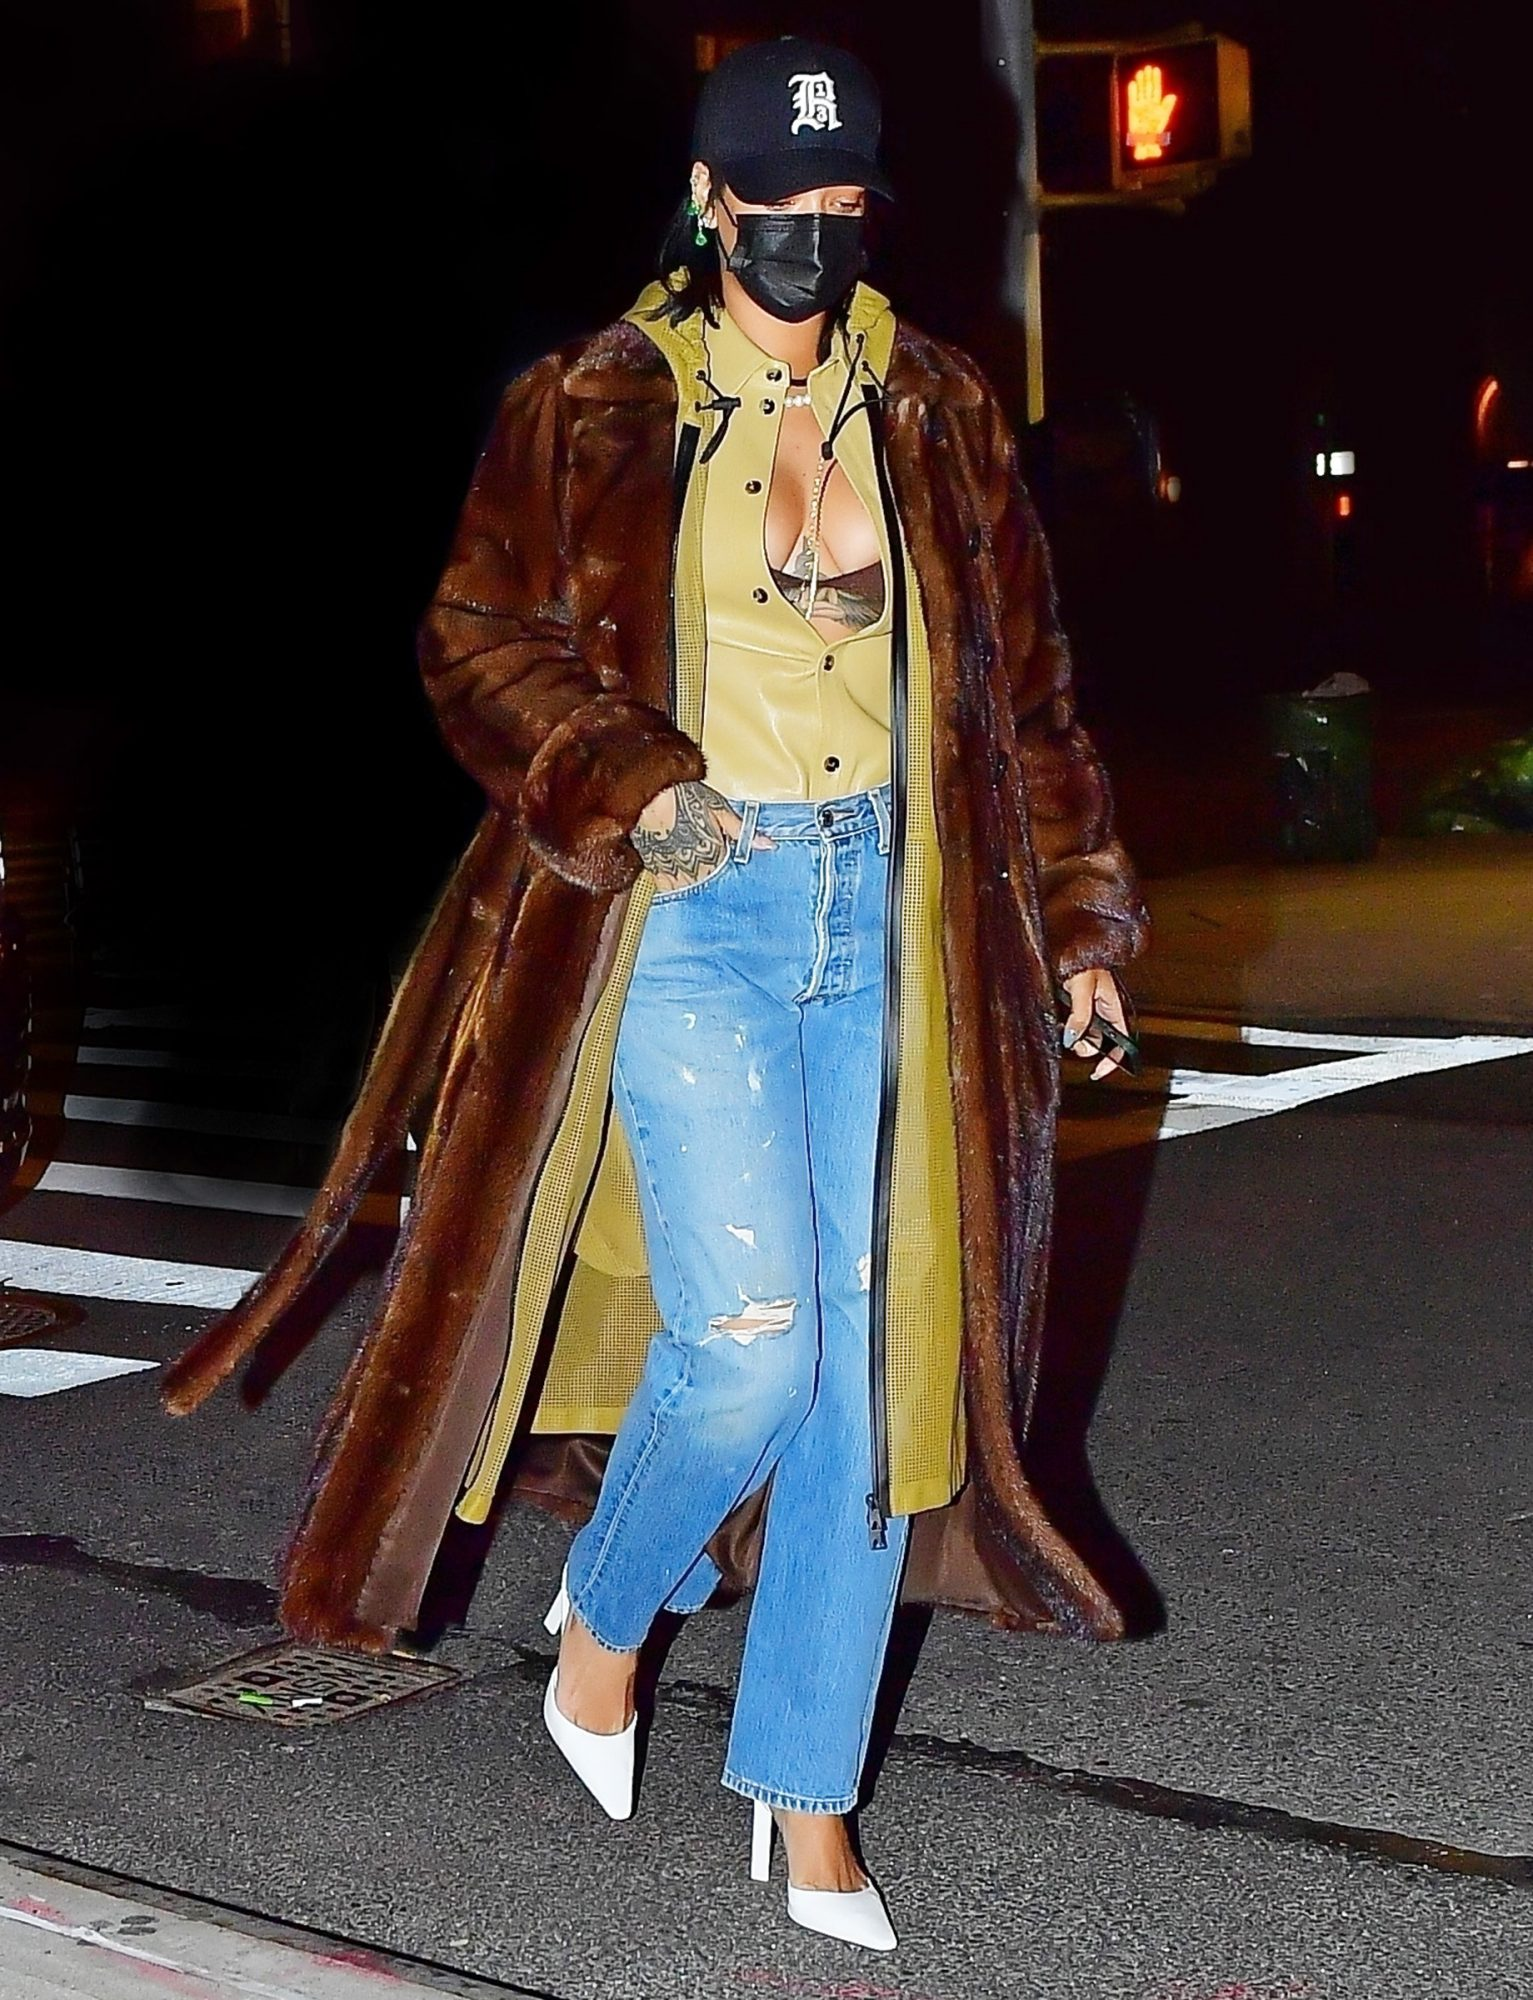 Rihanna shows ample cleavage stepping out for a dinner date with A$AP Rocky in NYC